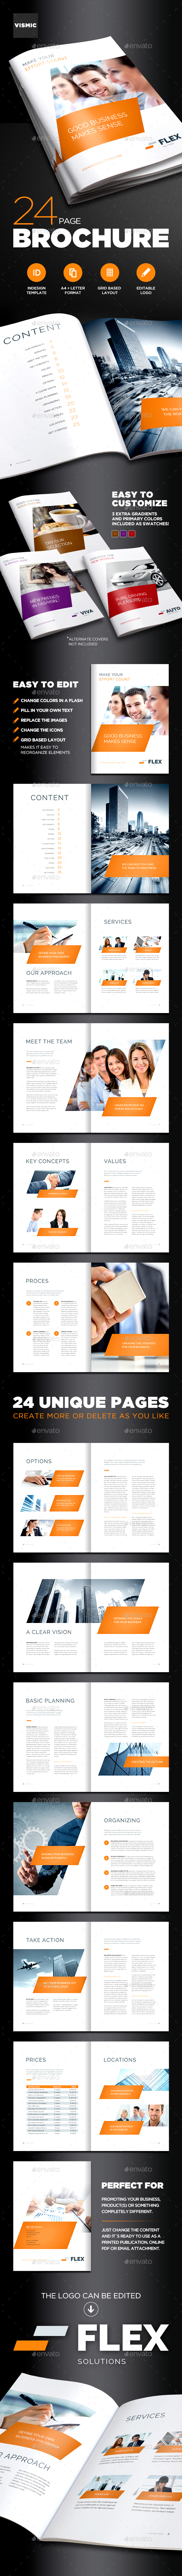 Business Brochure template for Indesign - A4 and Letter - Corporate Business Cards